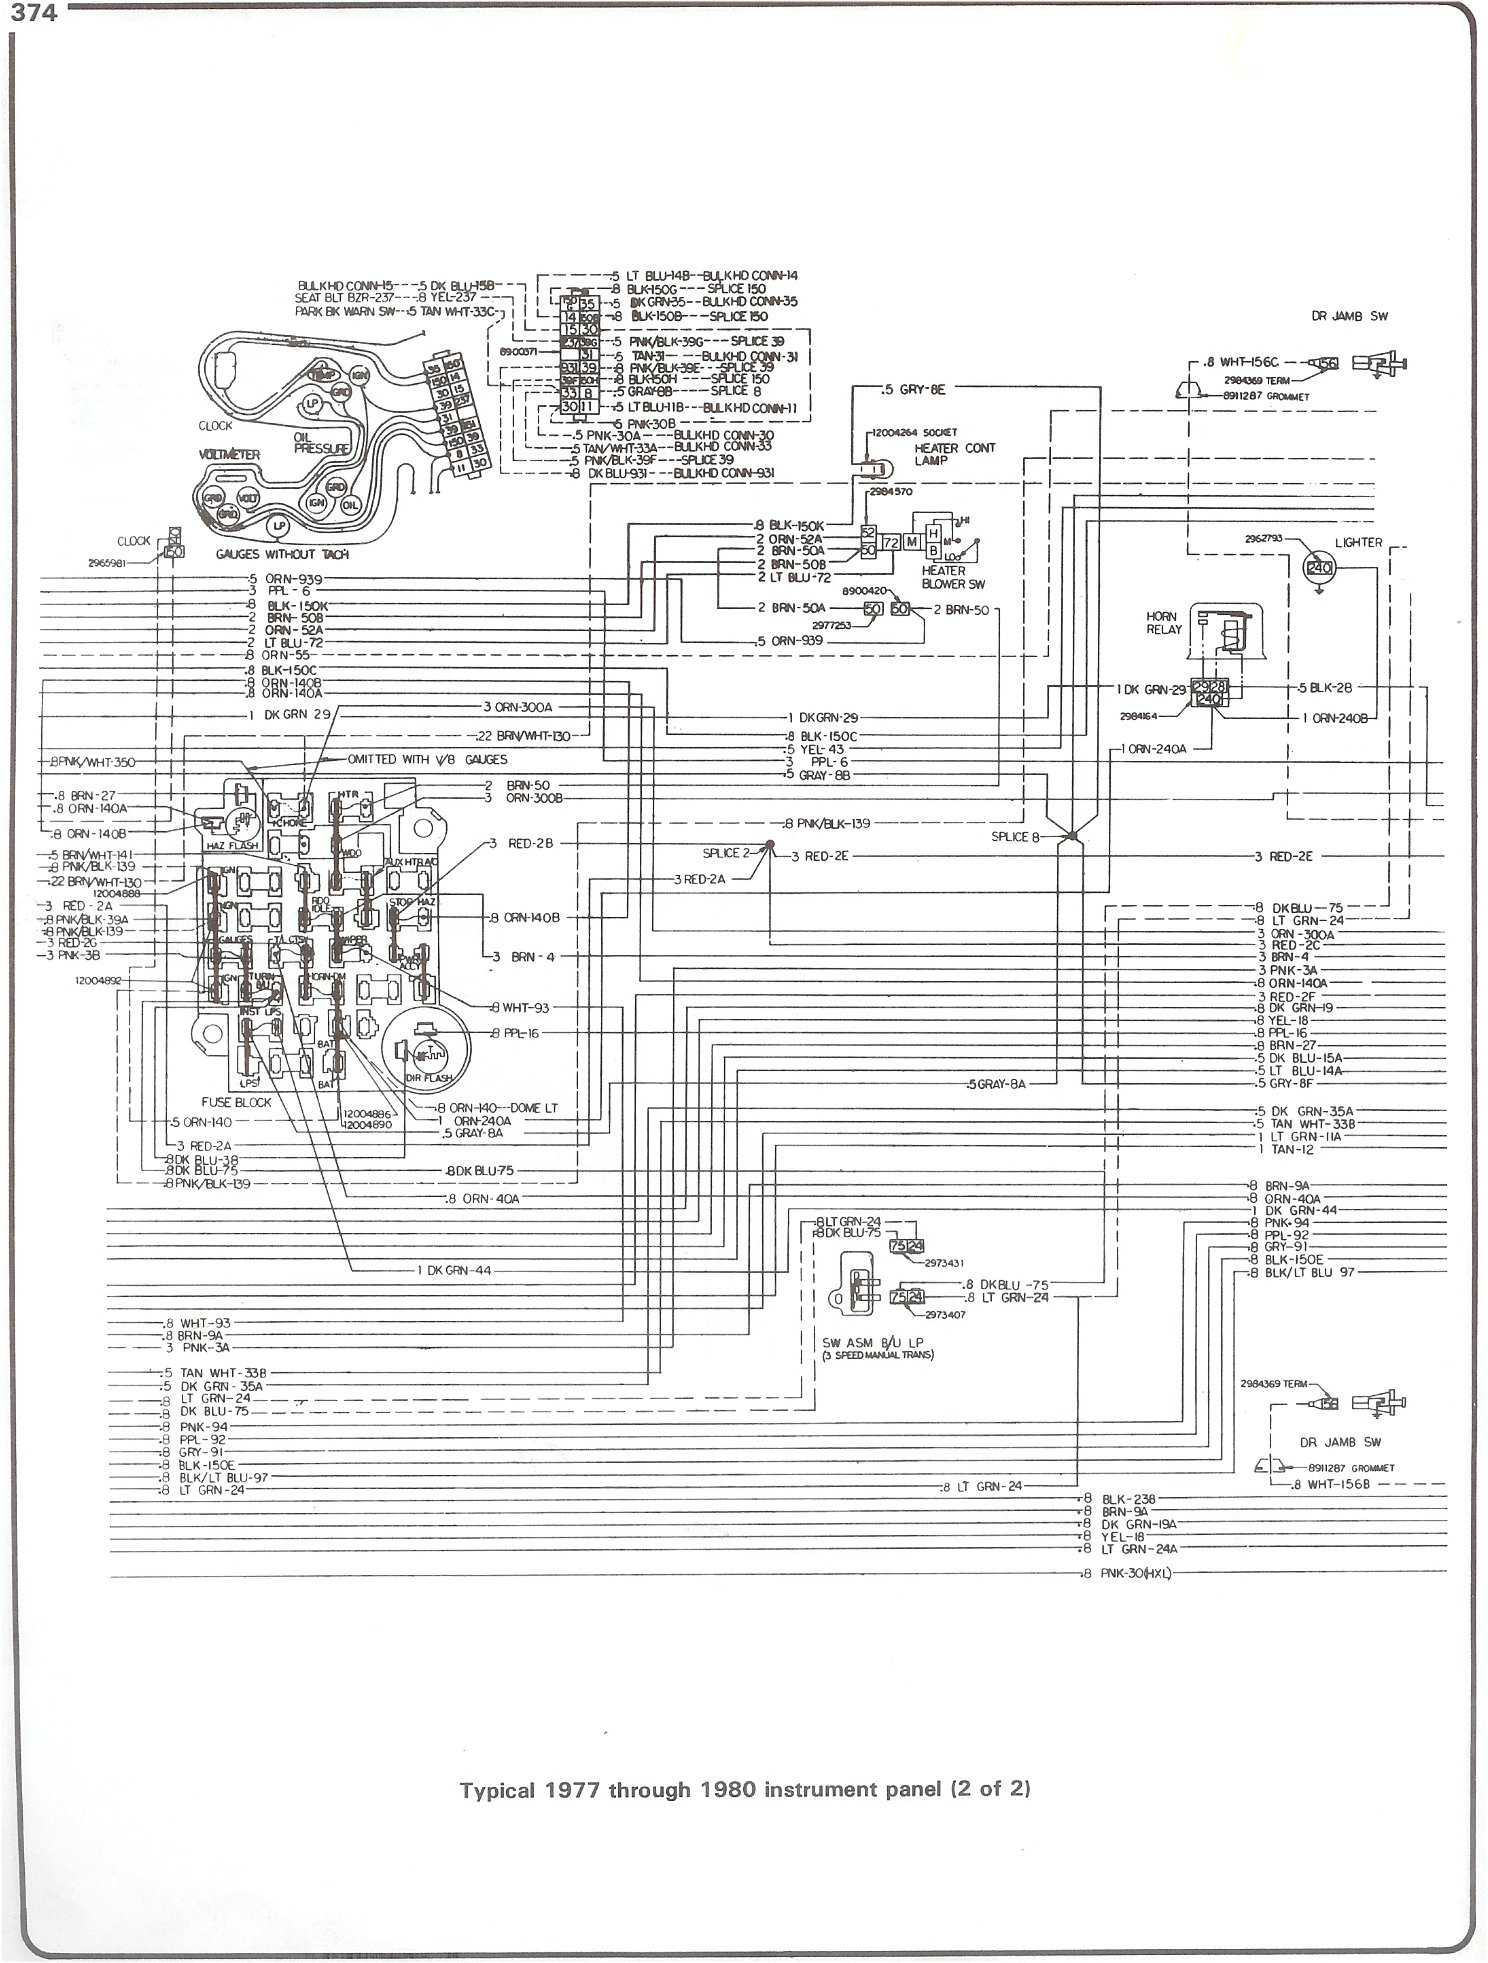 DIAGRAM] 91 Chevy Truck Wiring Diagram FULL Version HD Quality Wiring  Diagram - HEARTDIAGRAMBLOODFLOW.CITTADICASTROVILLARI.ITcittadicastrovillari.it